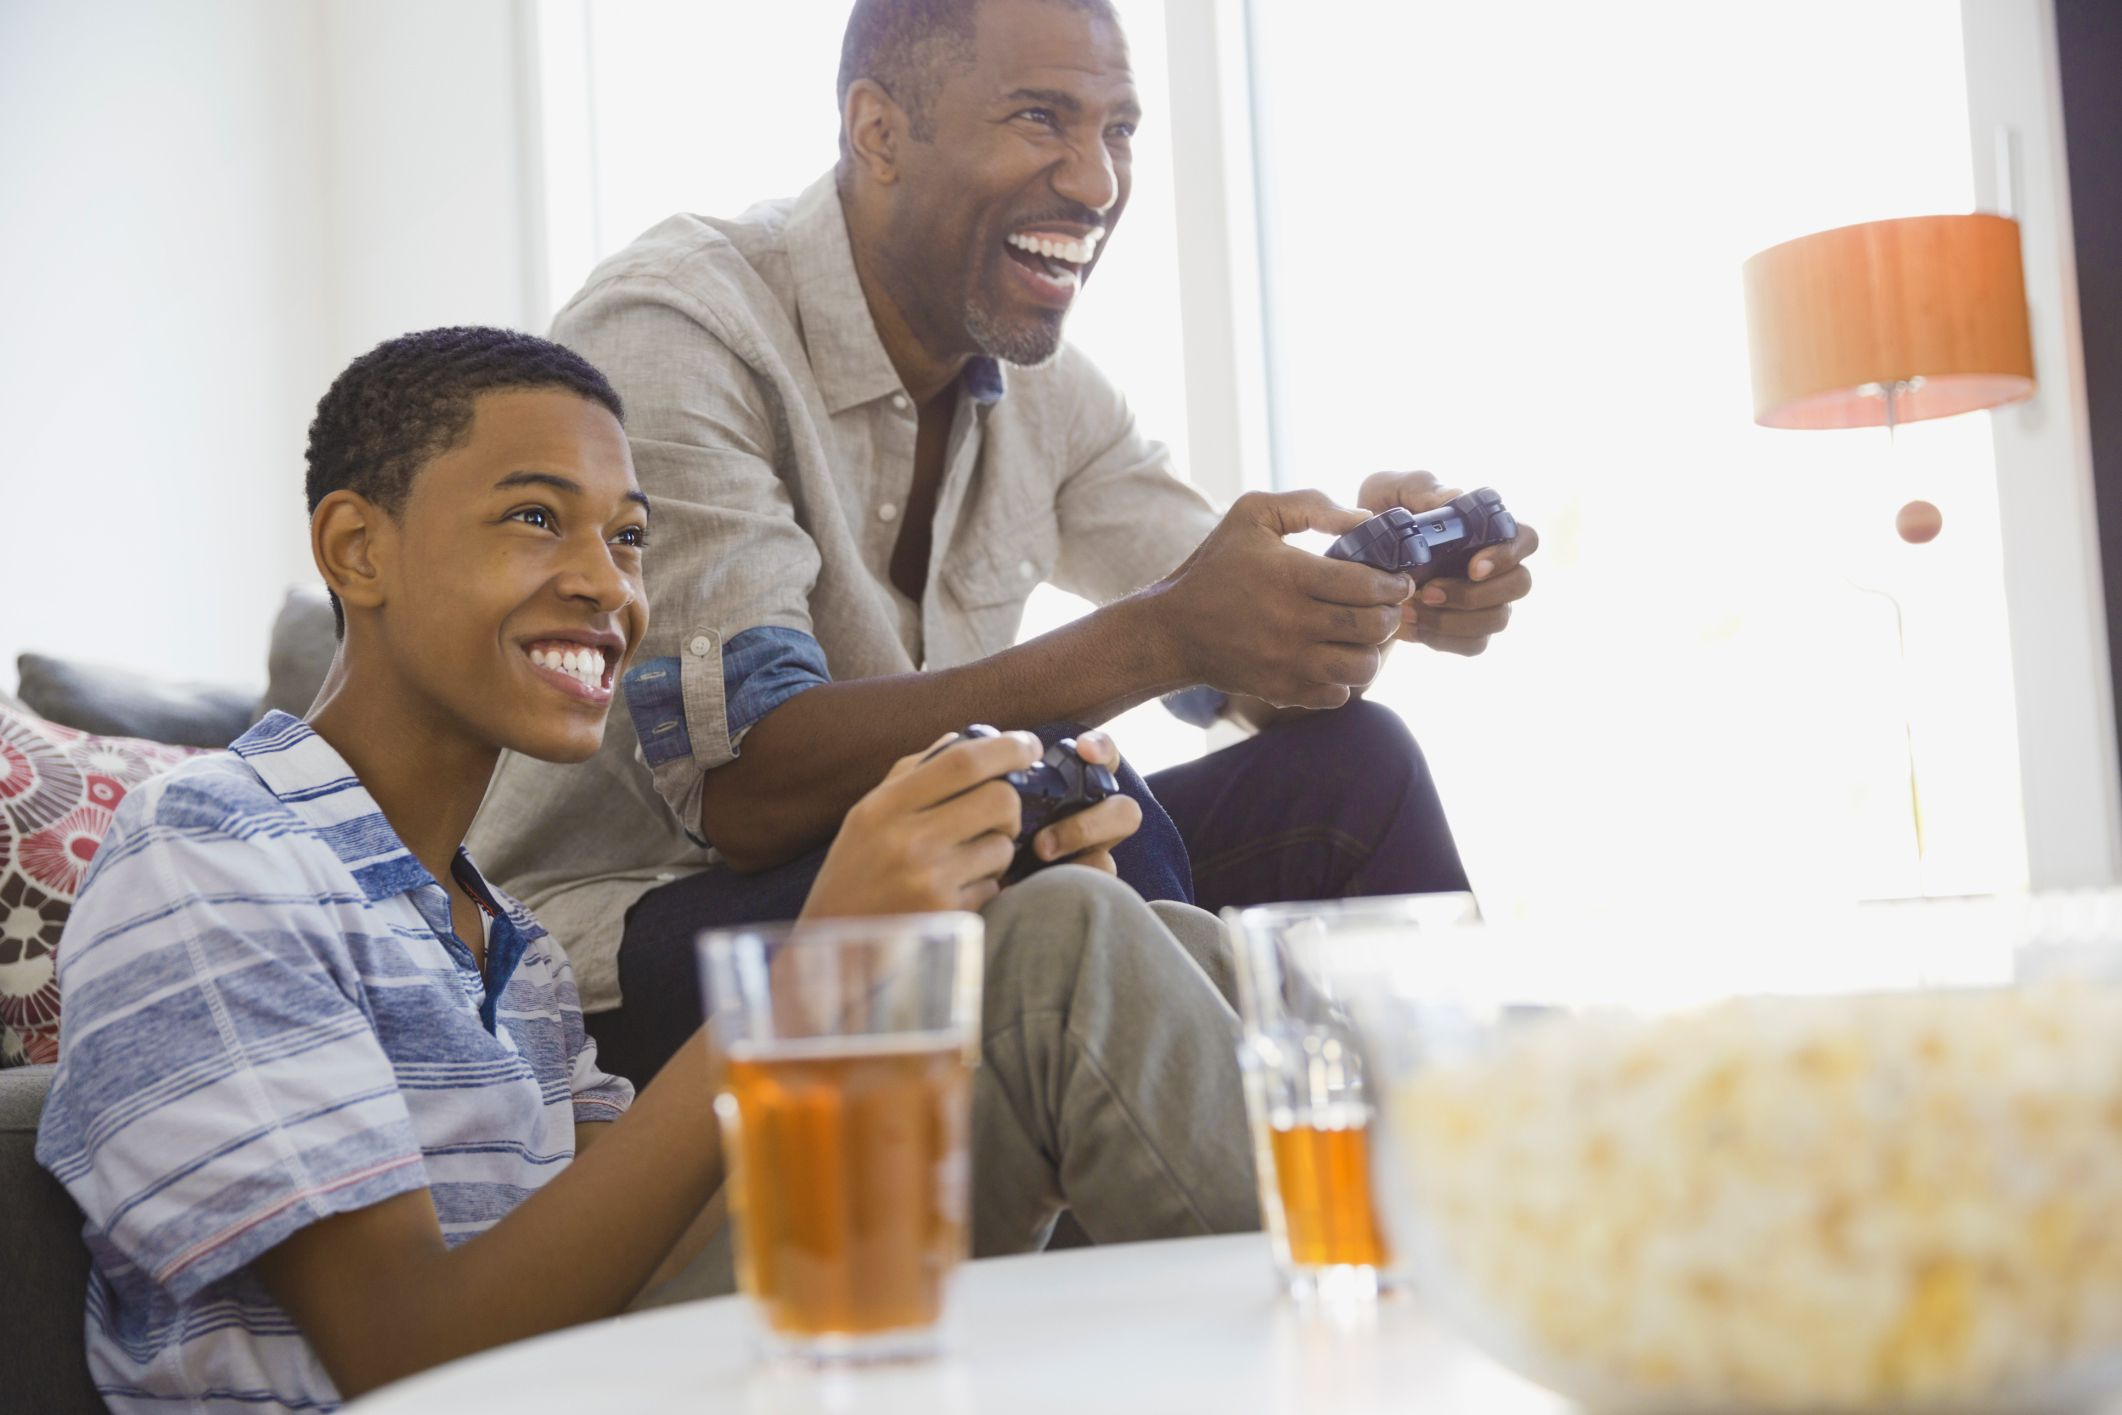 video games affect the brain Their series of studies revealed that the amygdala-striatal system – the impulsive section of the brain – was smaller and more sensitive in addicted players users.